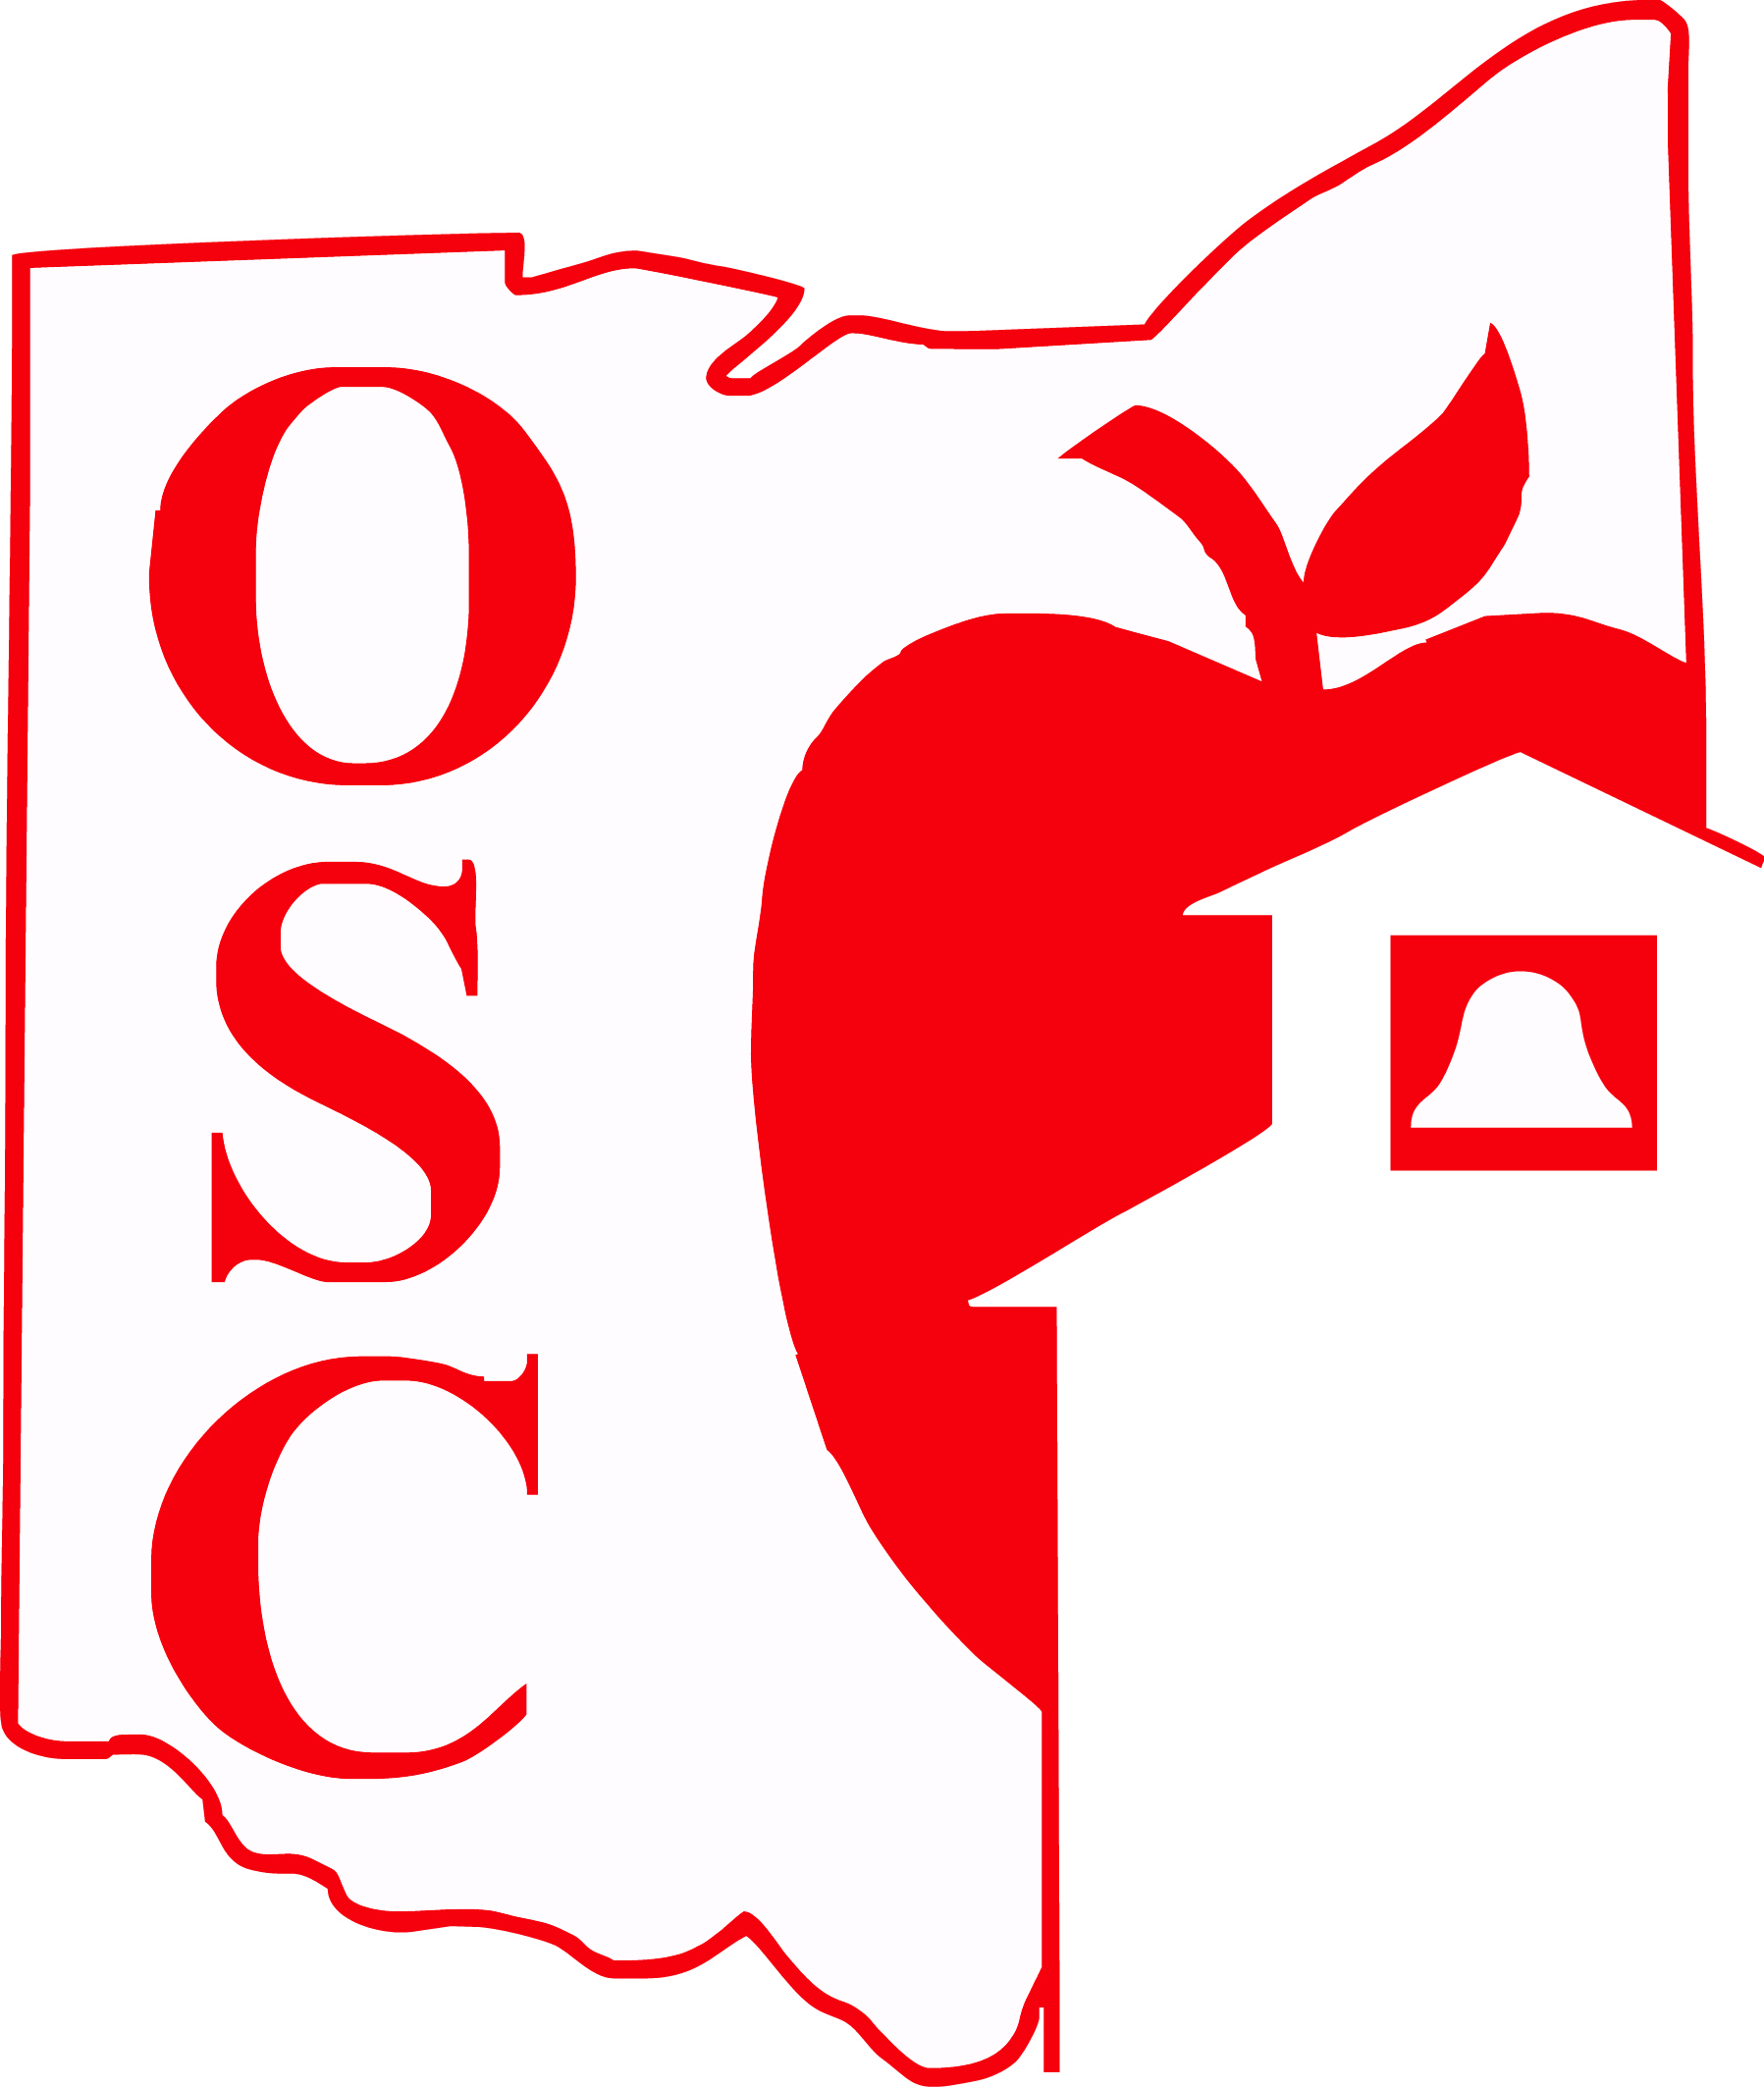 OSC Logo Color white state no background 200